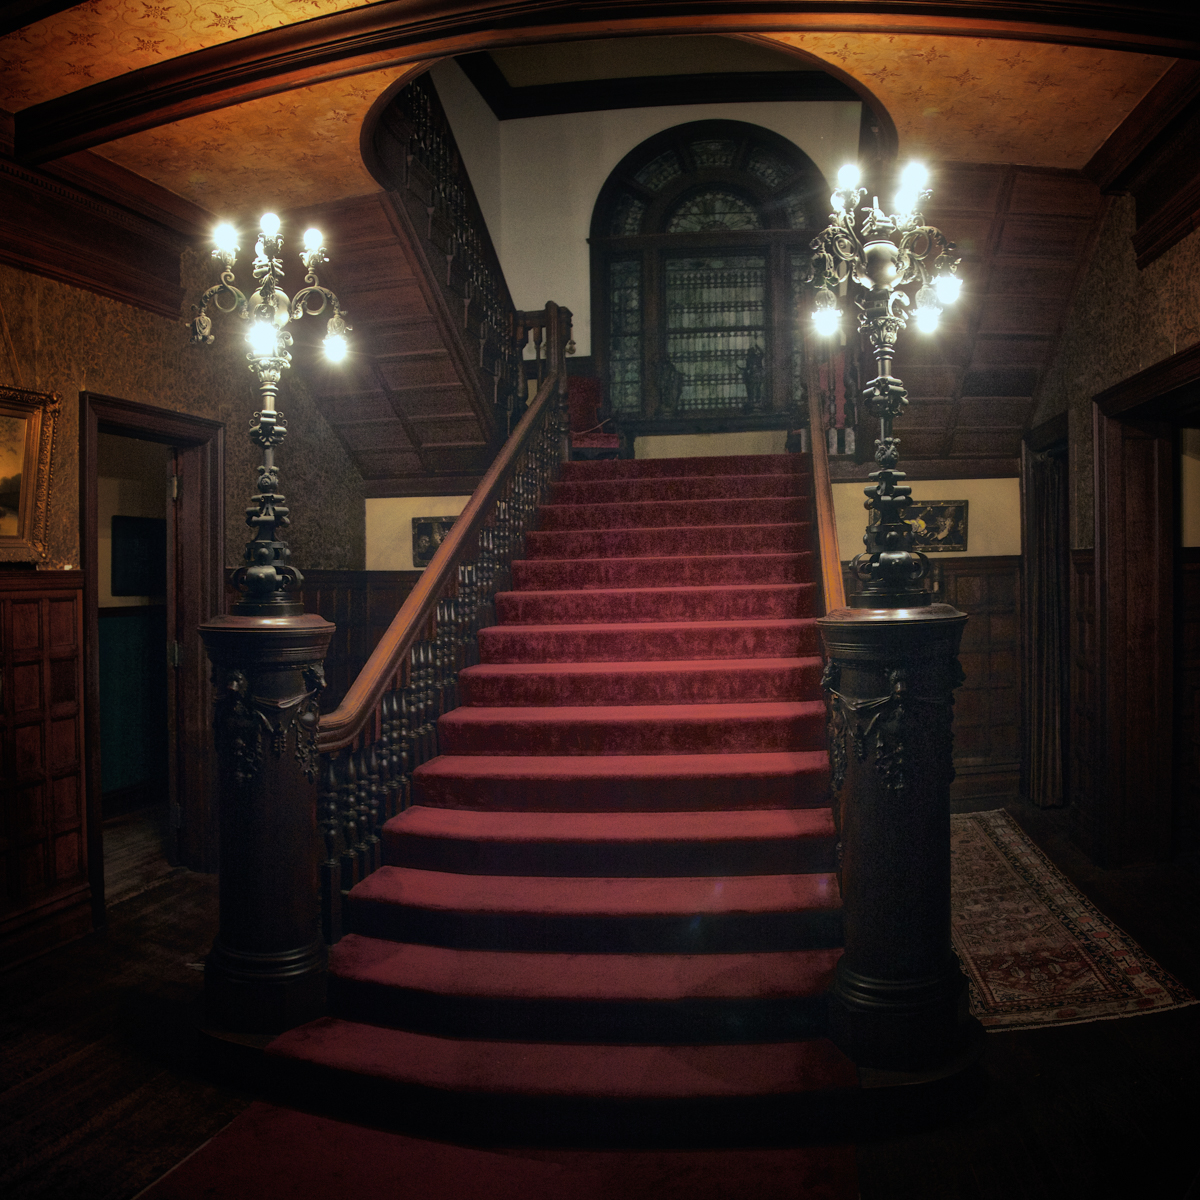 The main staircase at night, where Mark Twain spoke at Rockcliffe Mansion